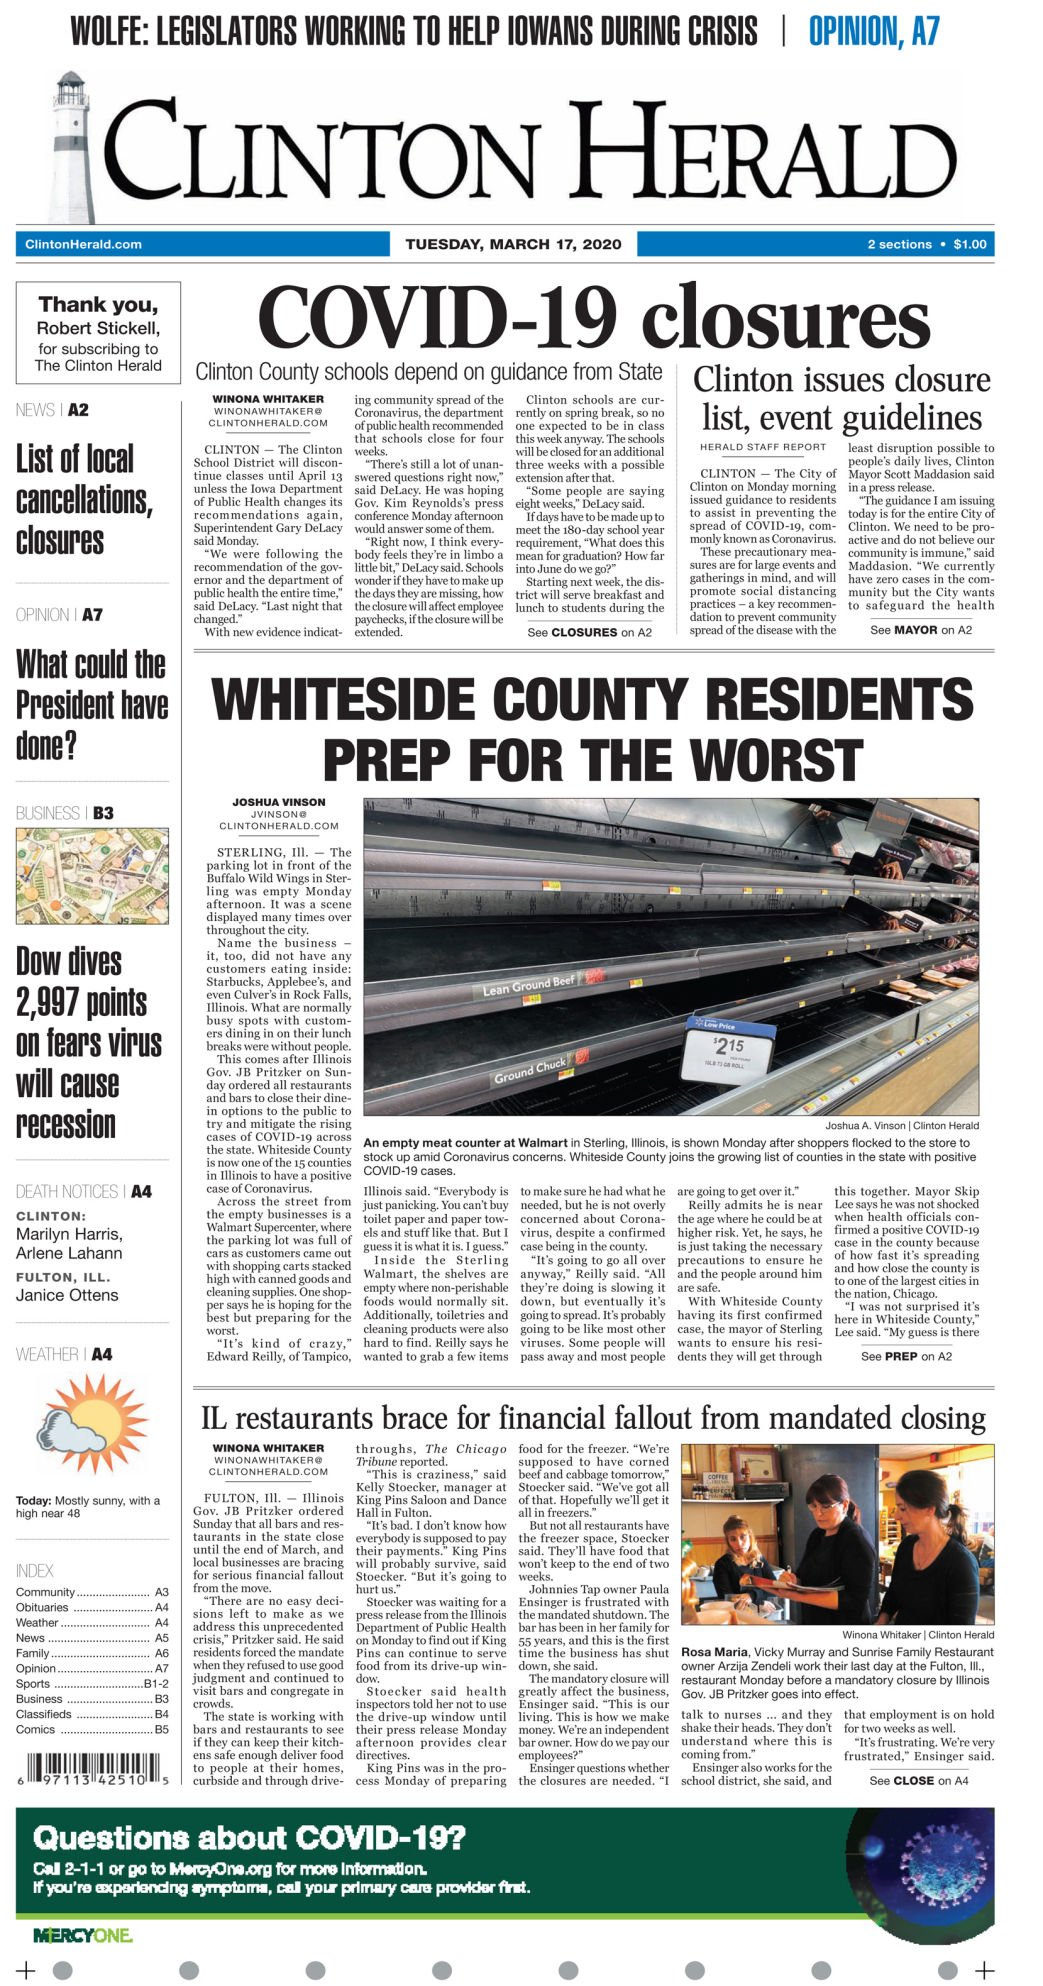 March 17, 2020 Front page